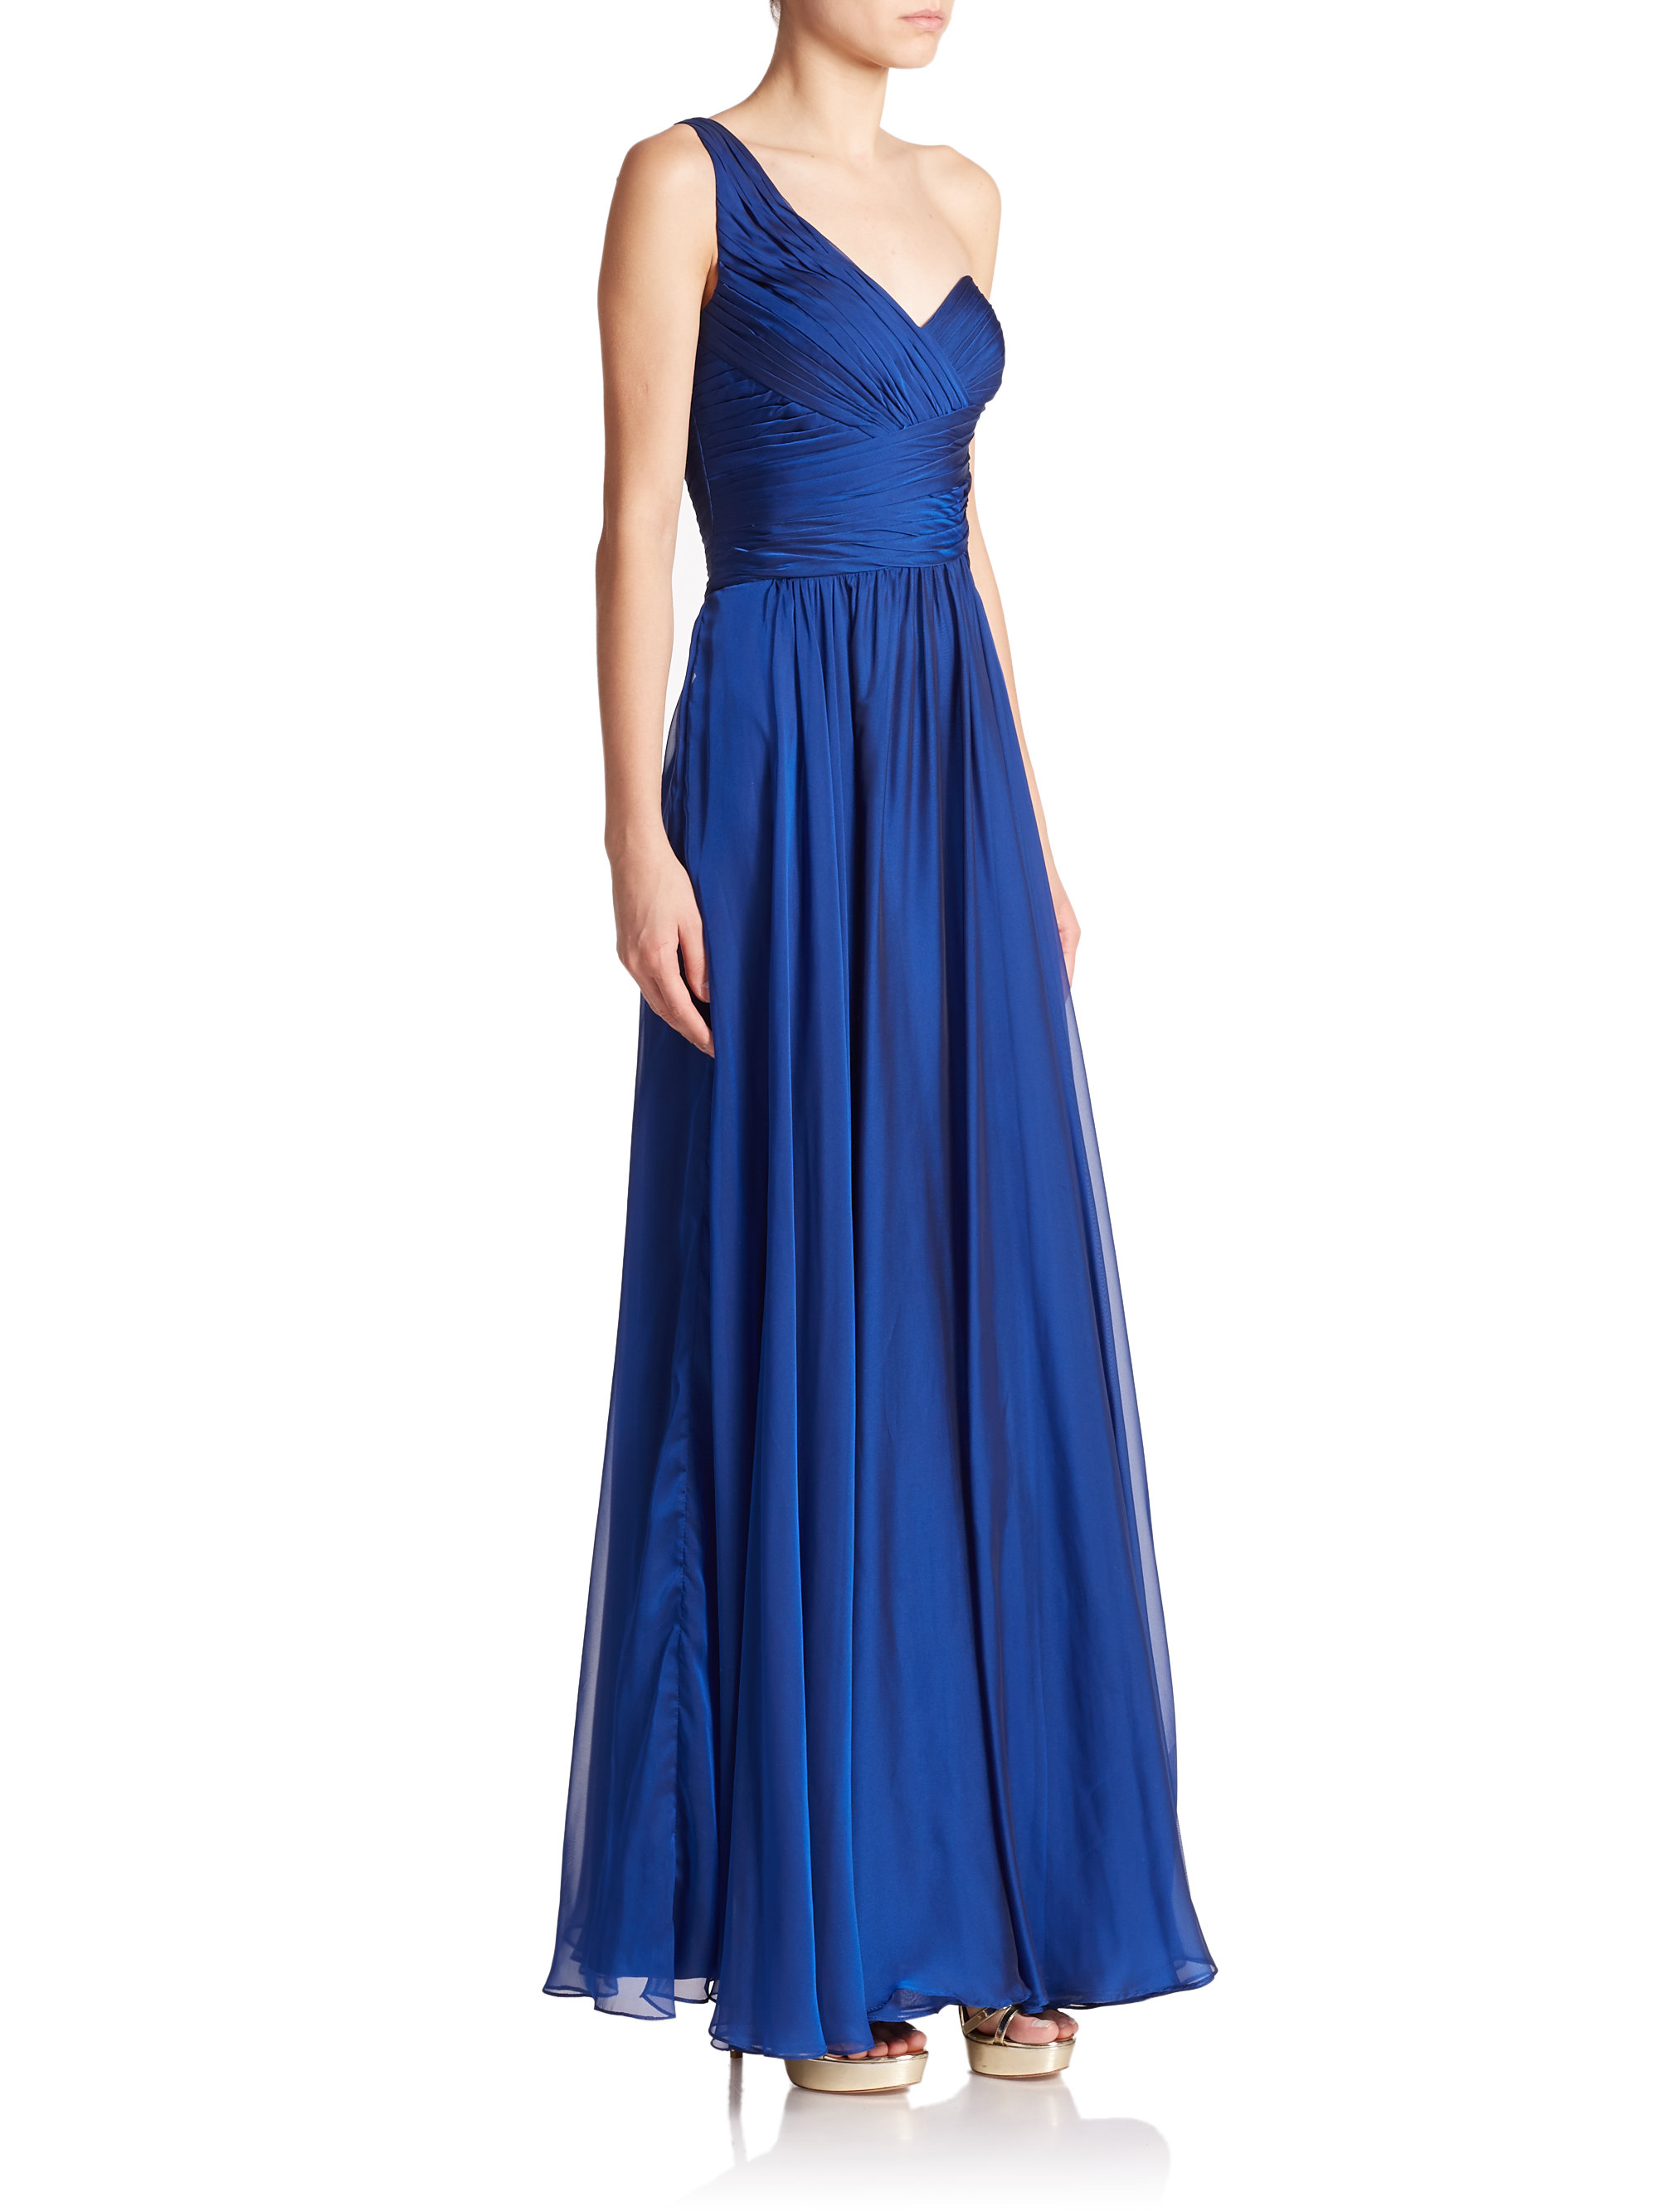 Hope, La femme one shoulder dress And have